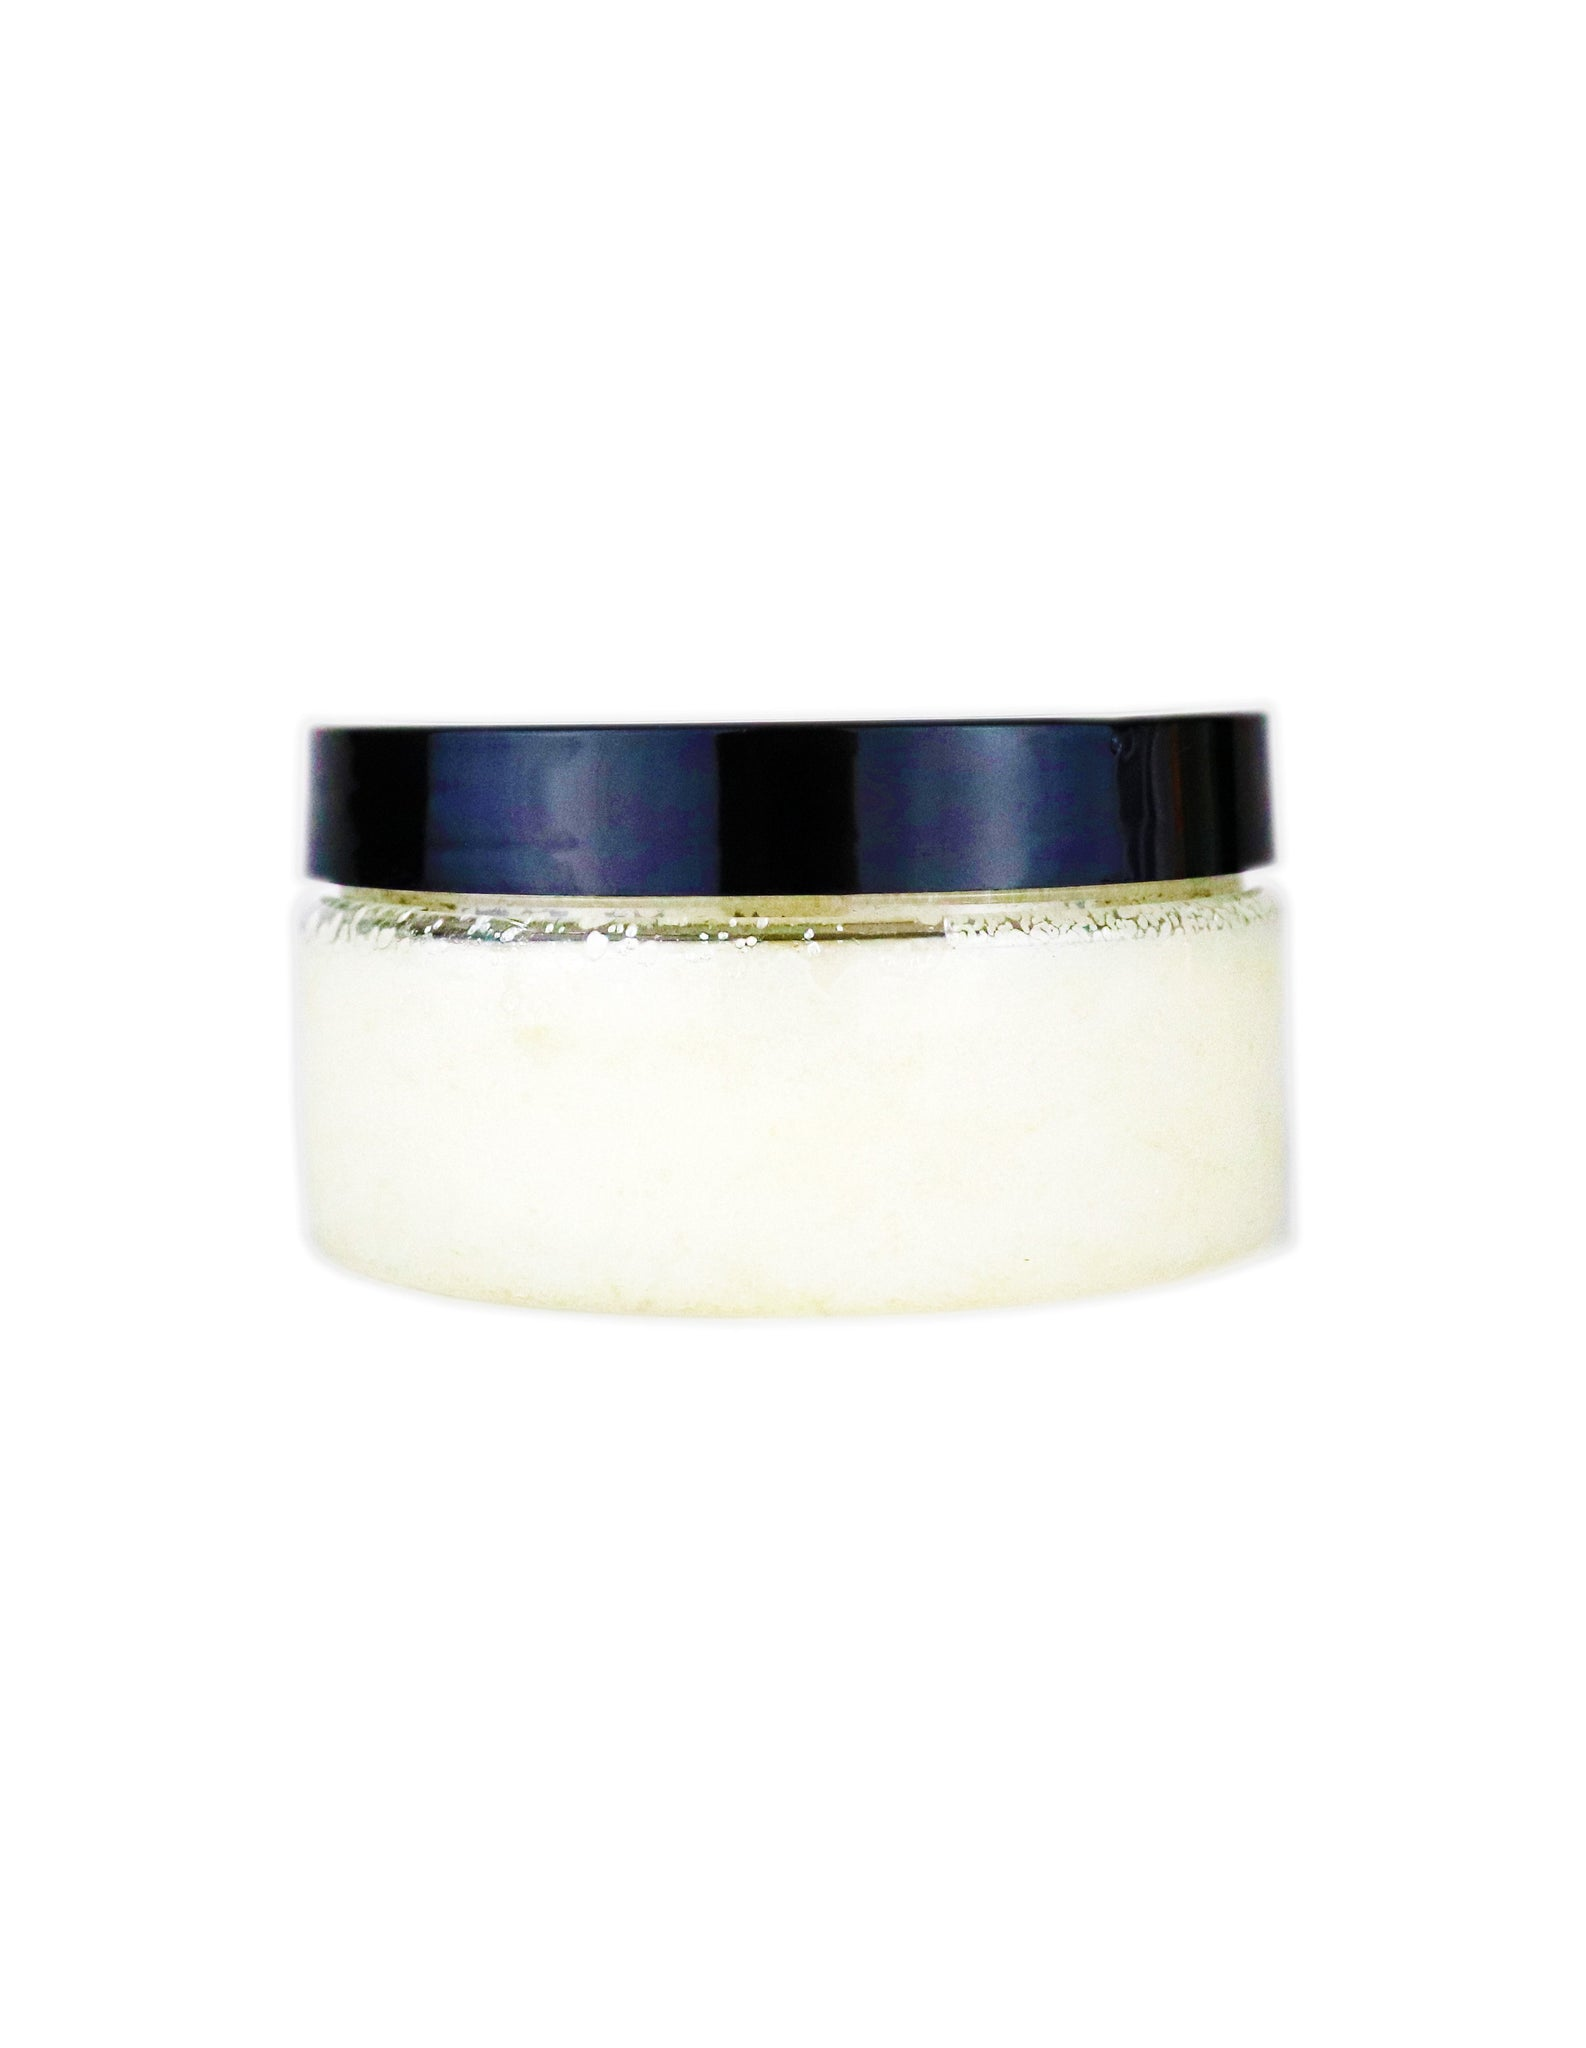 Rosemary Mint Body Scrub - Soapstones Natural Skincare